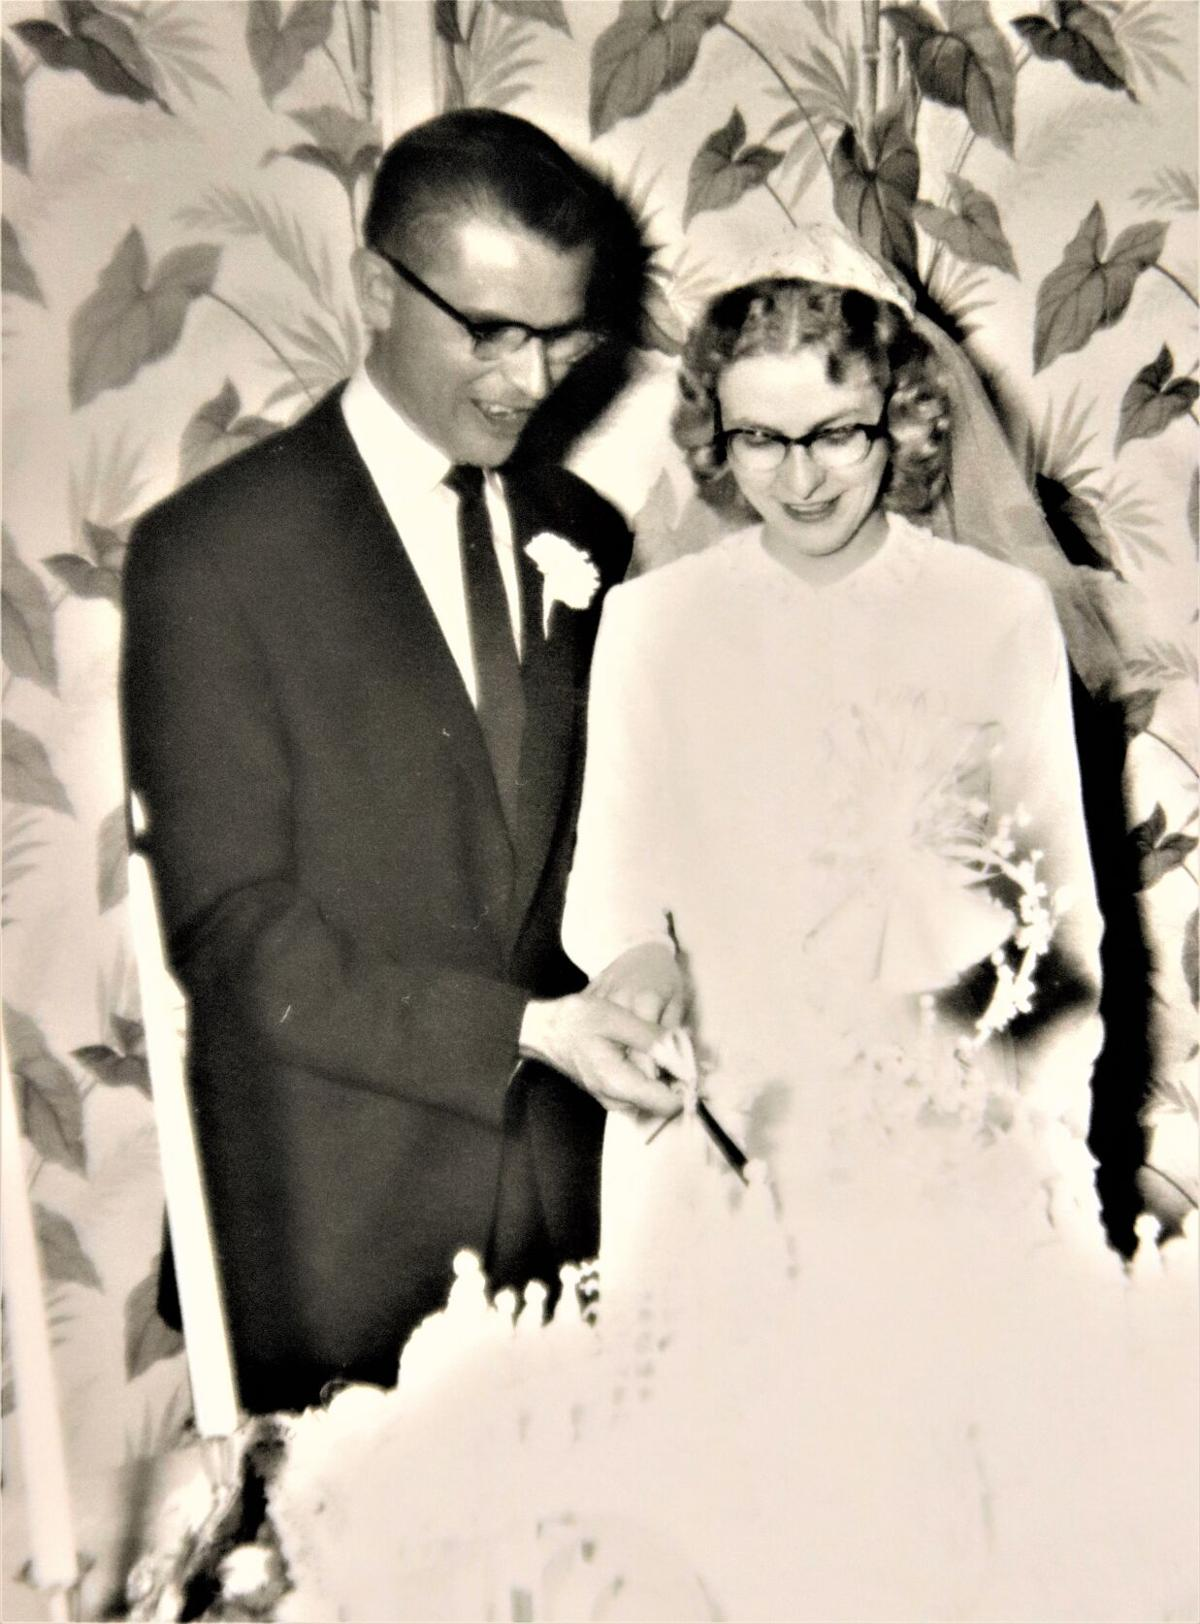 Art and Mary Rezac quietly going on 67 years of marriage 2